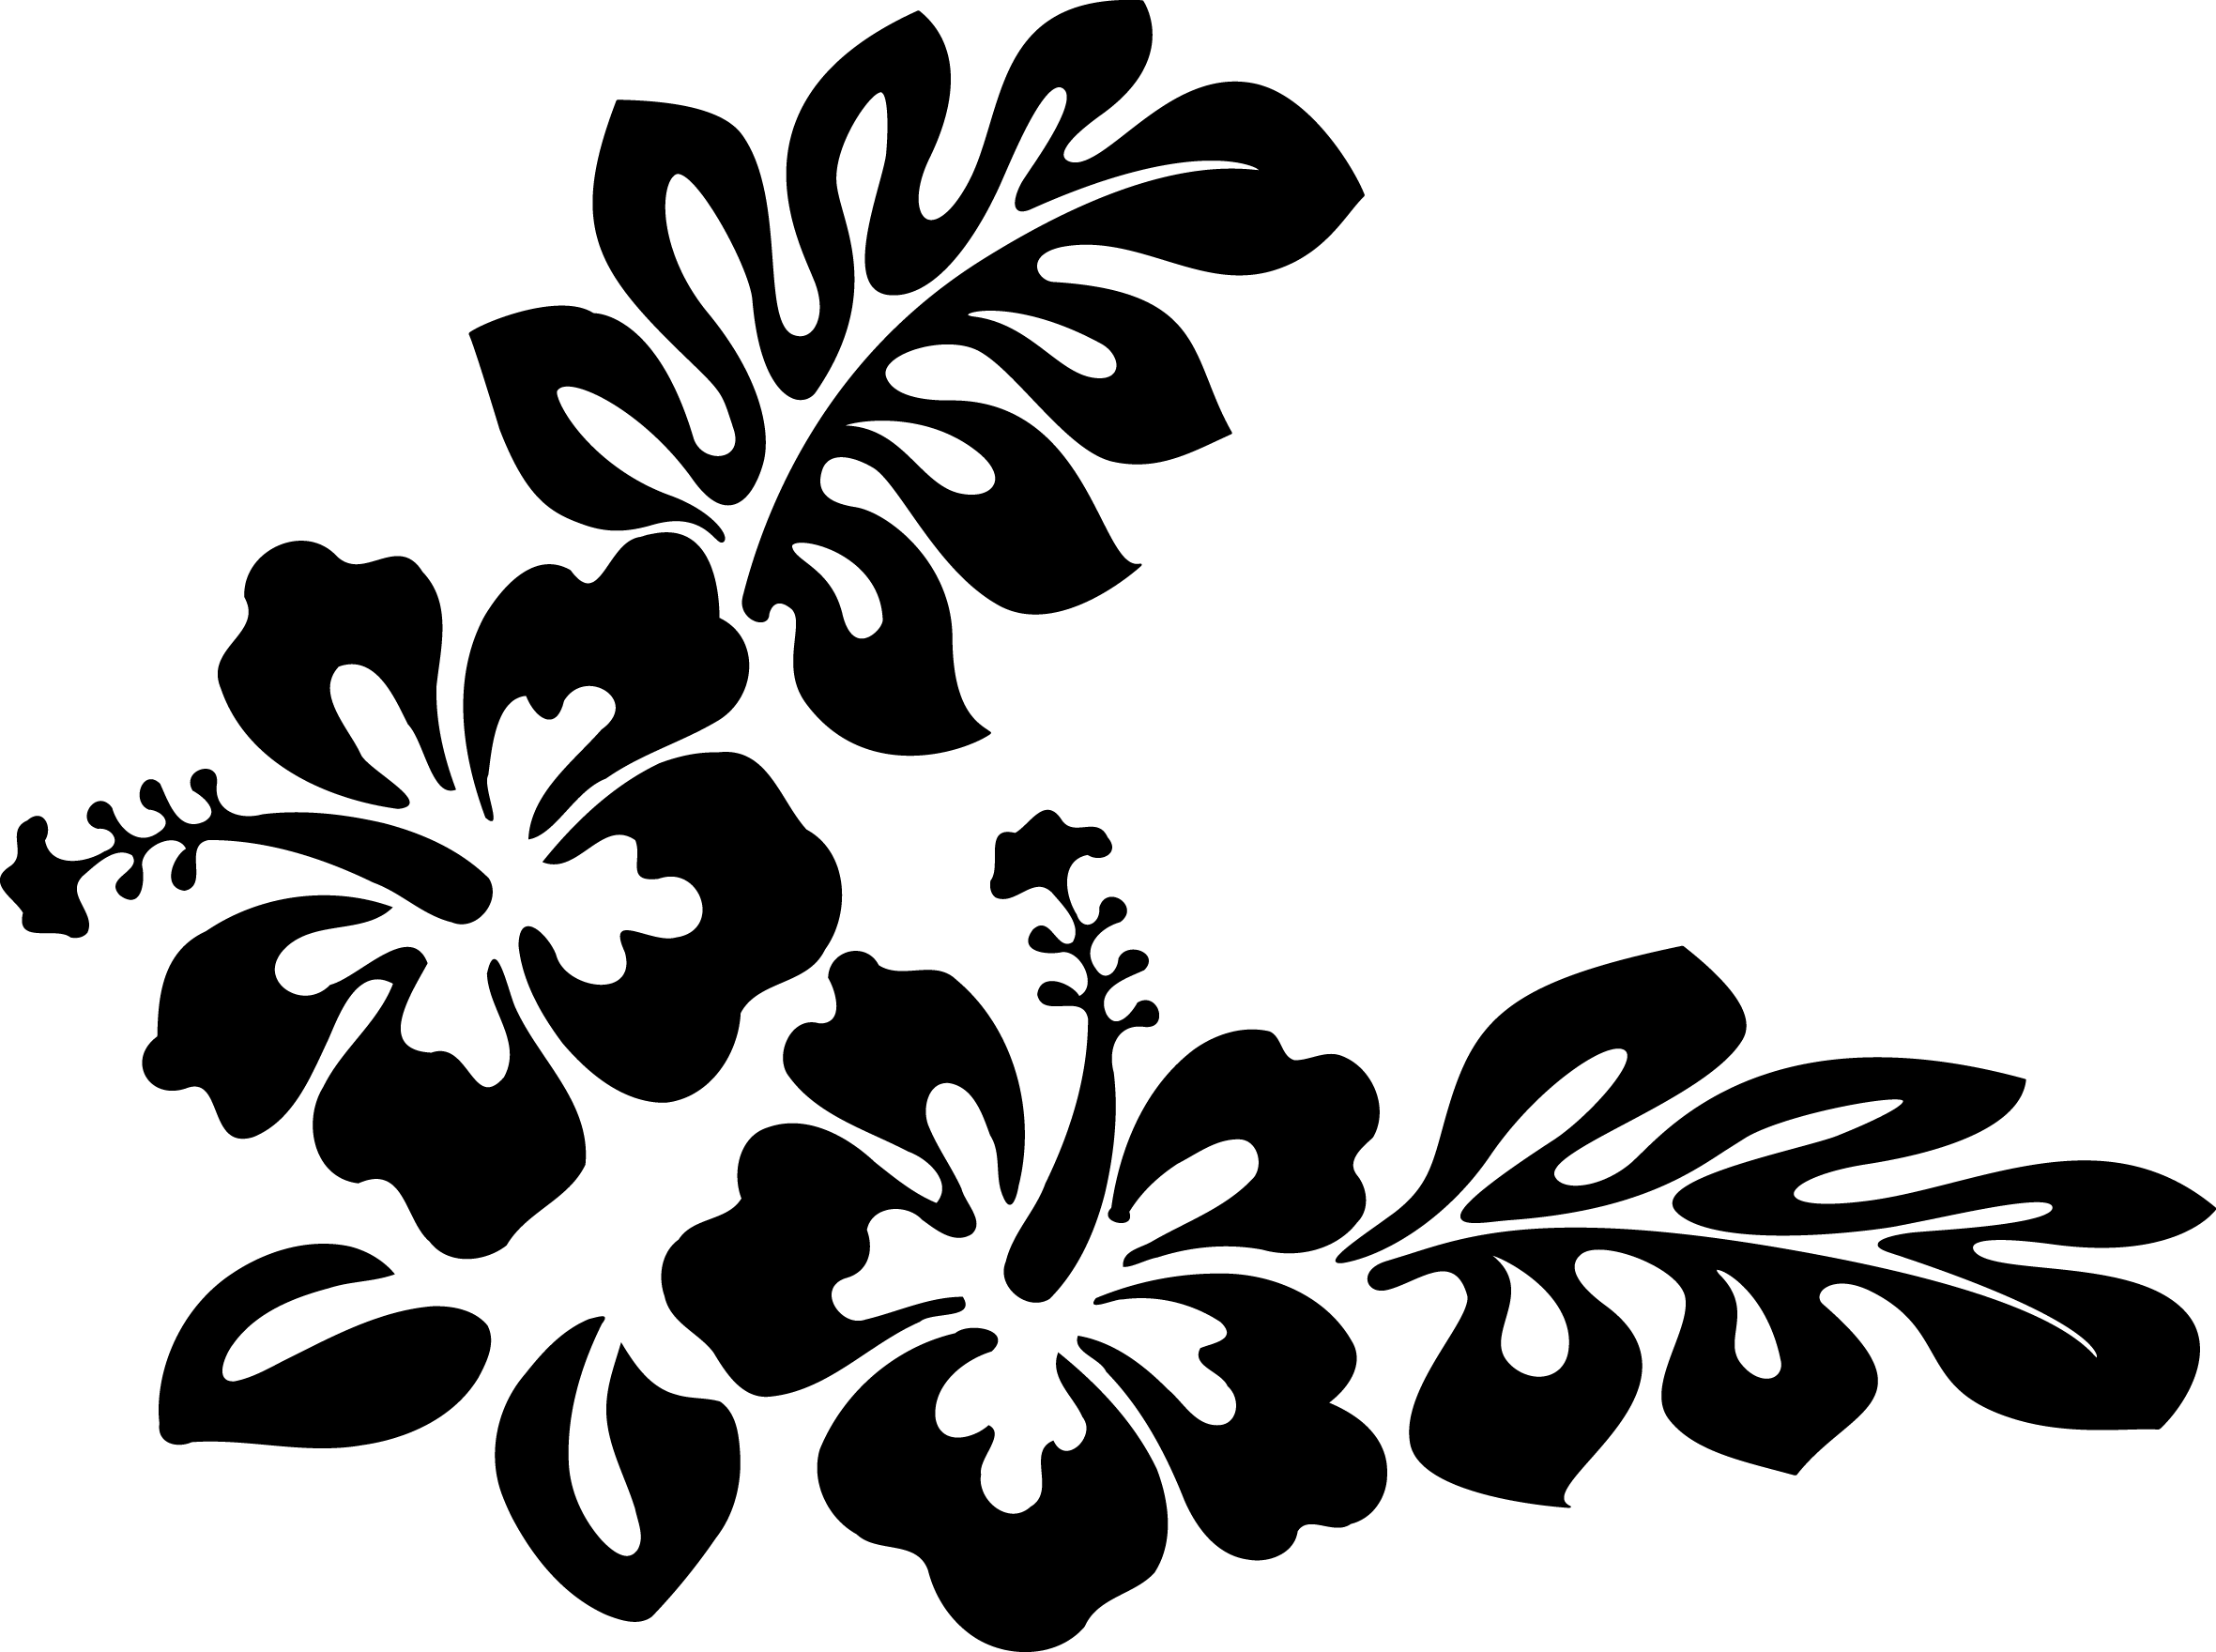 Hibiscus clipart hawaiian theme, Hibiscus hawaiian theme.